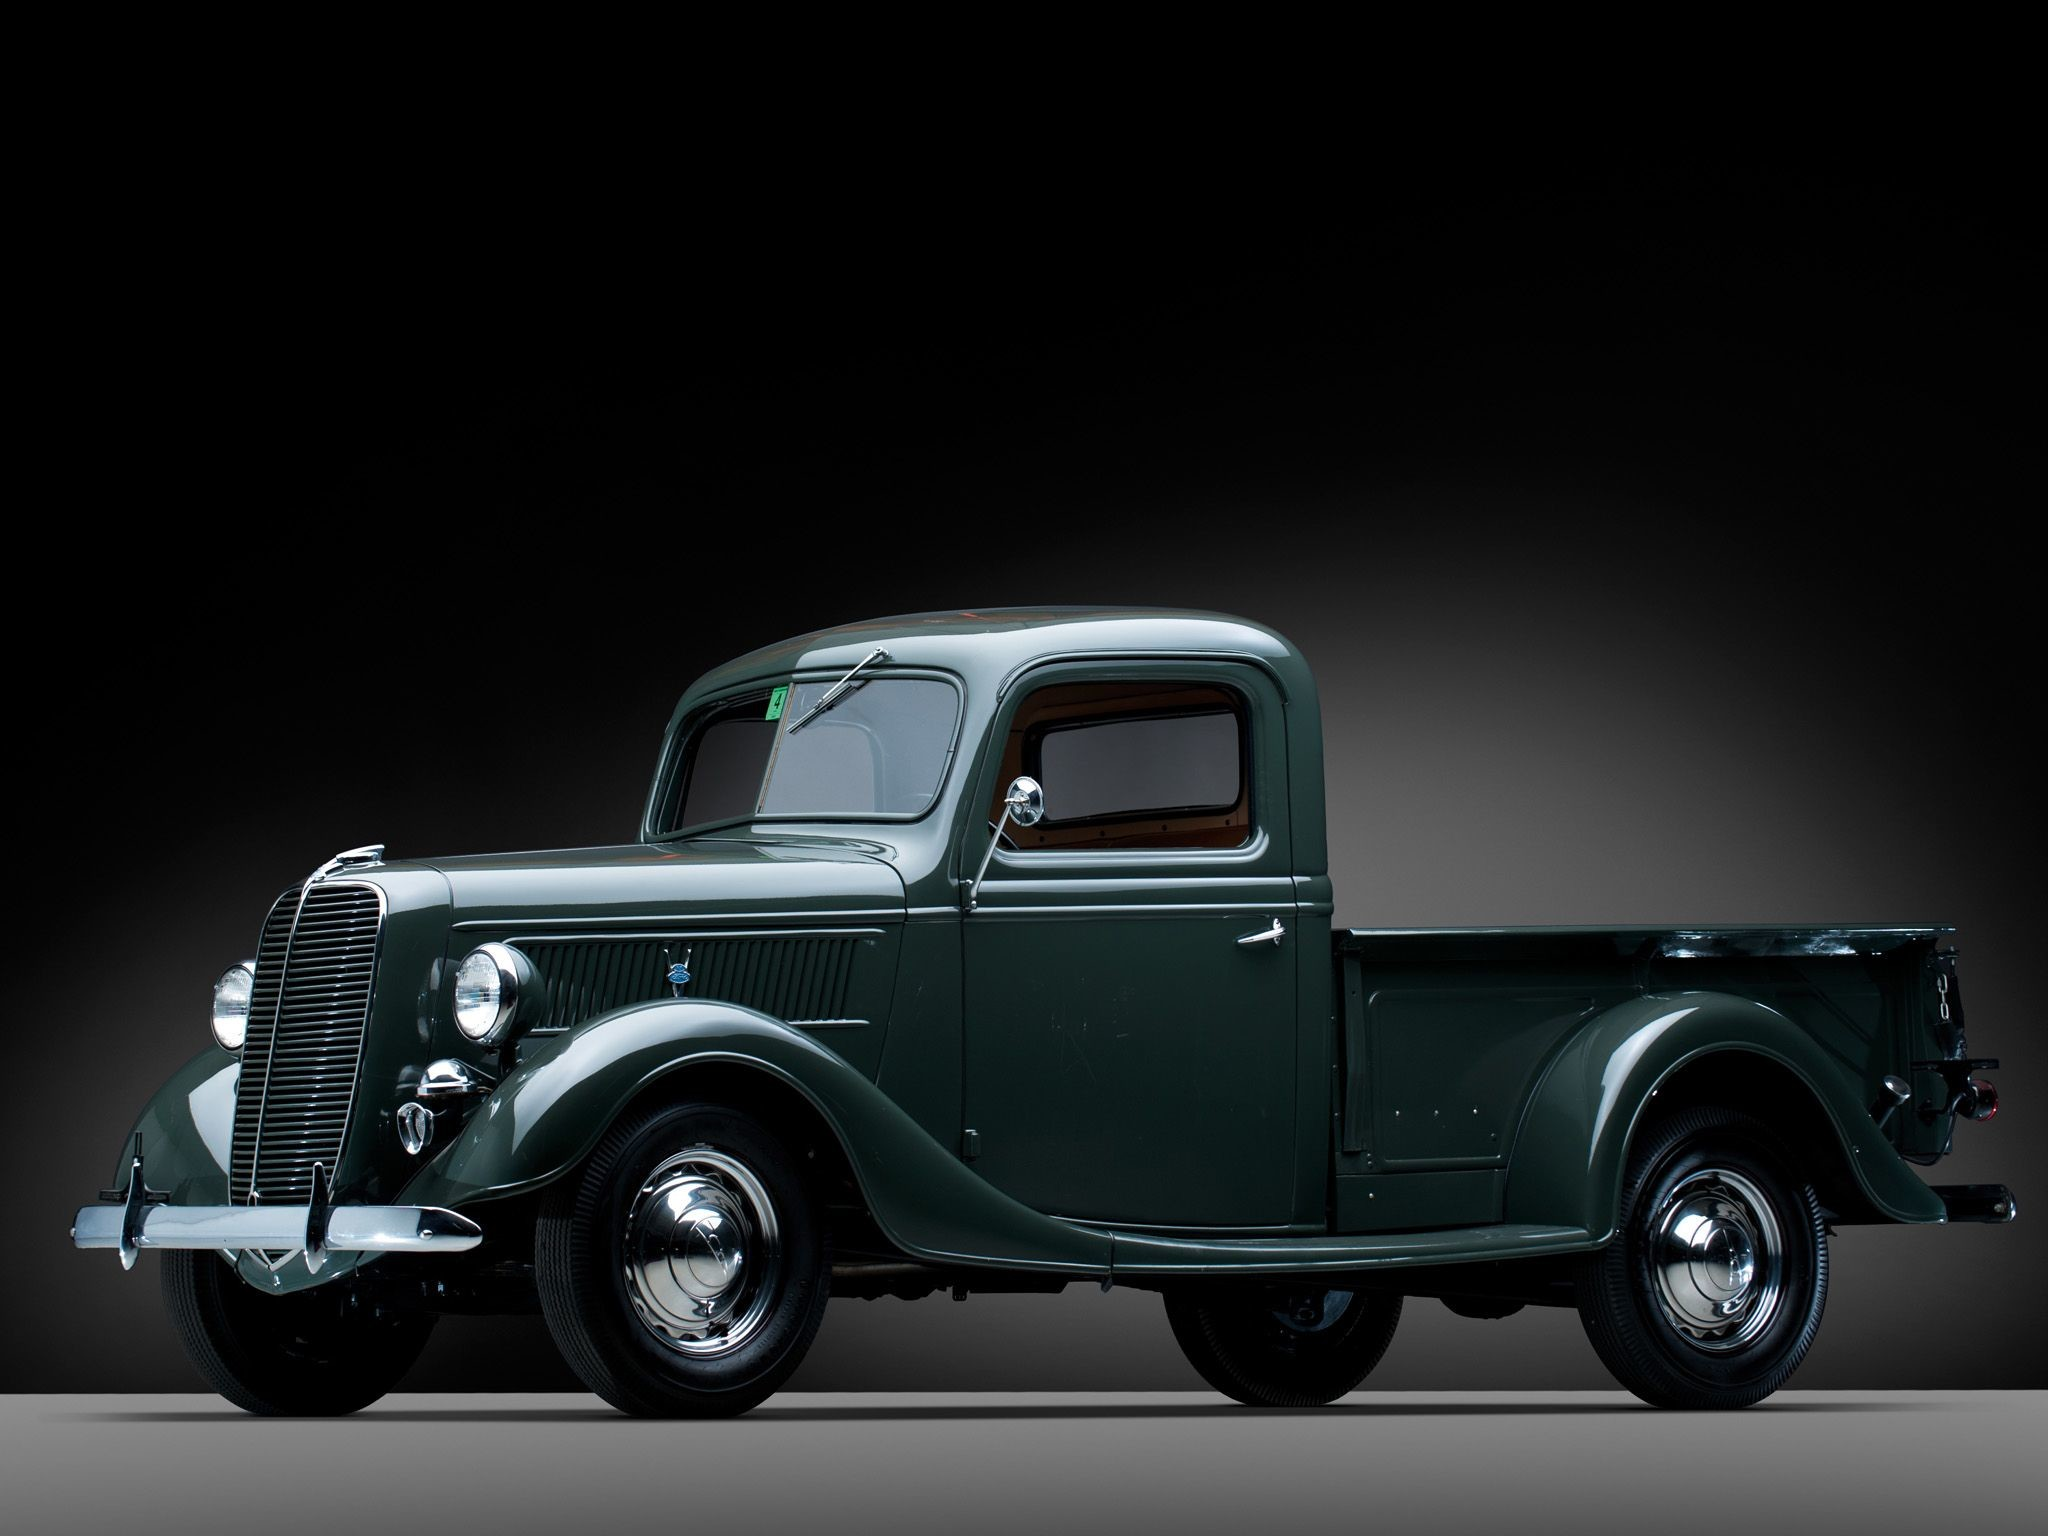 classic chevy truck wallpapers